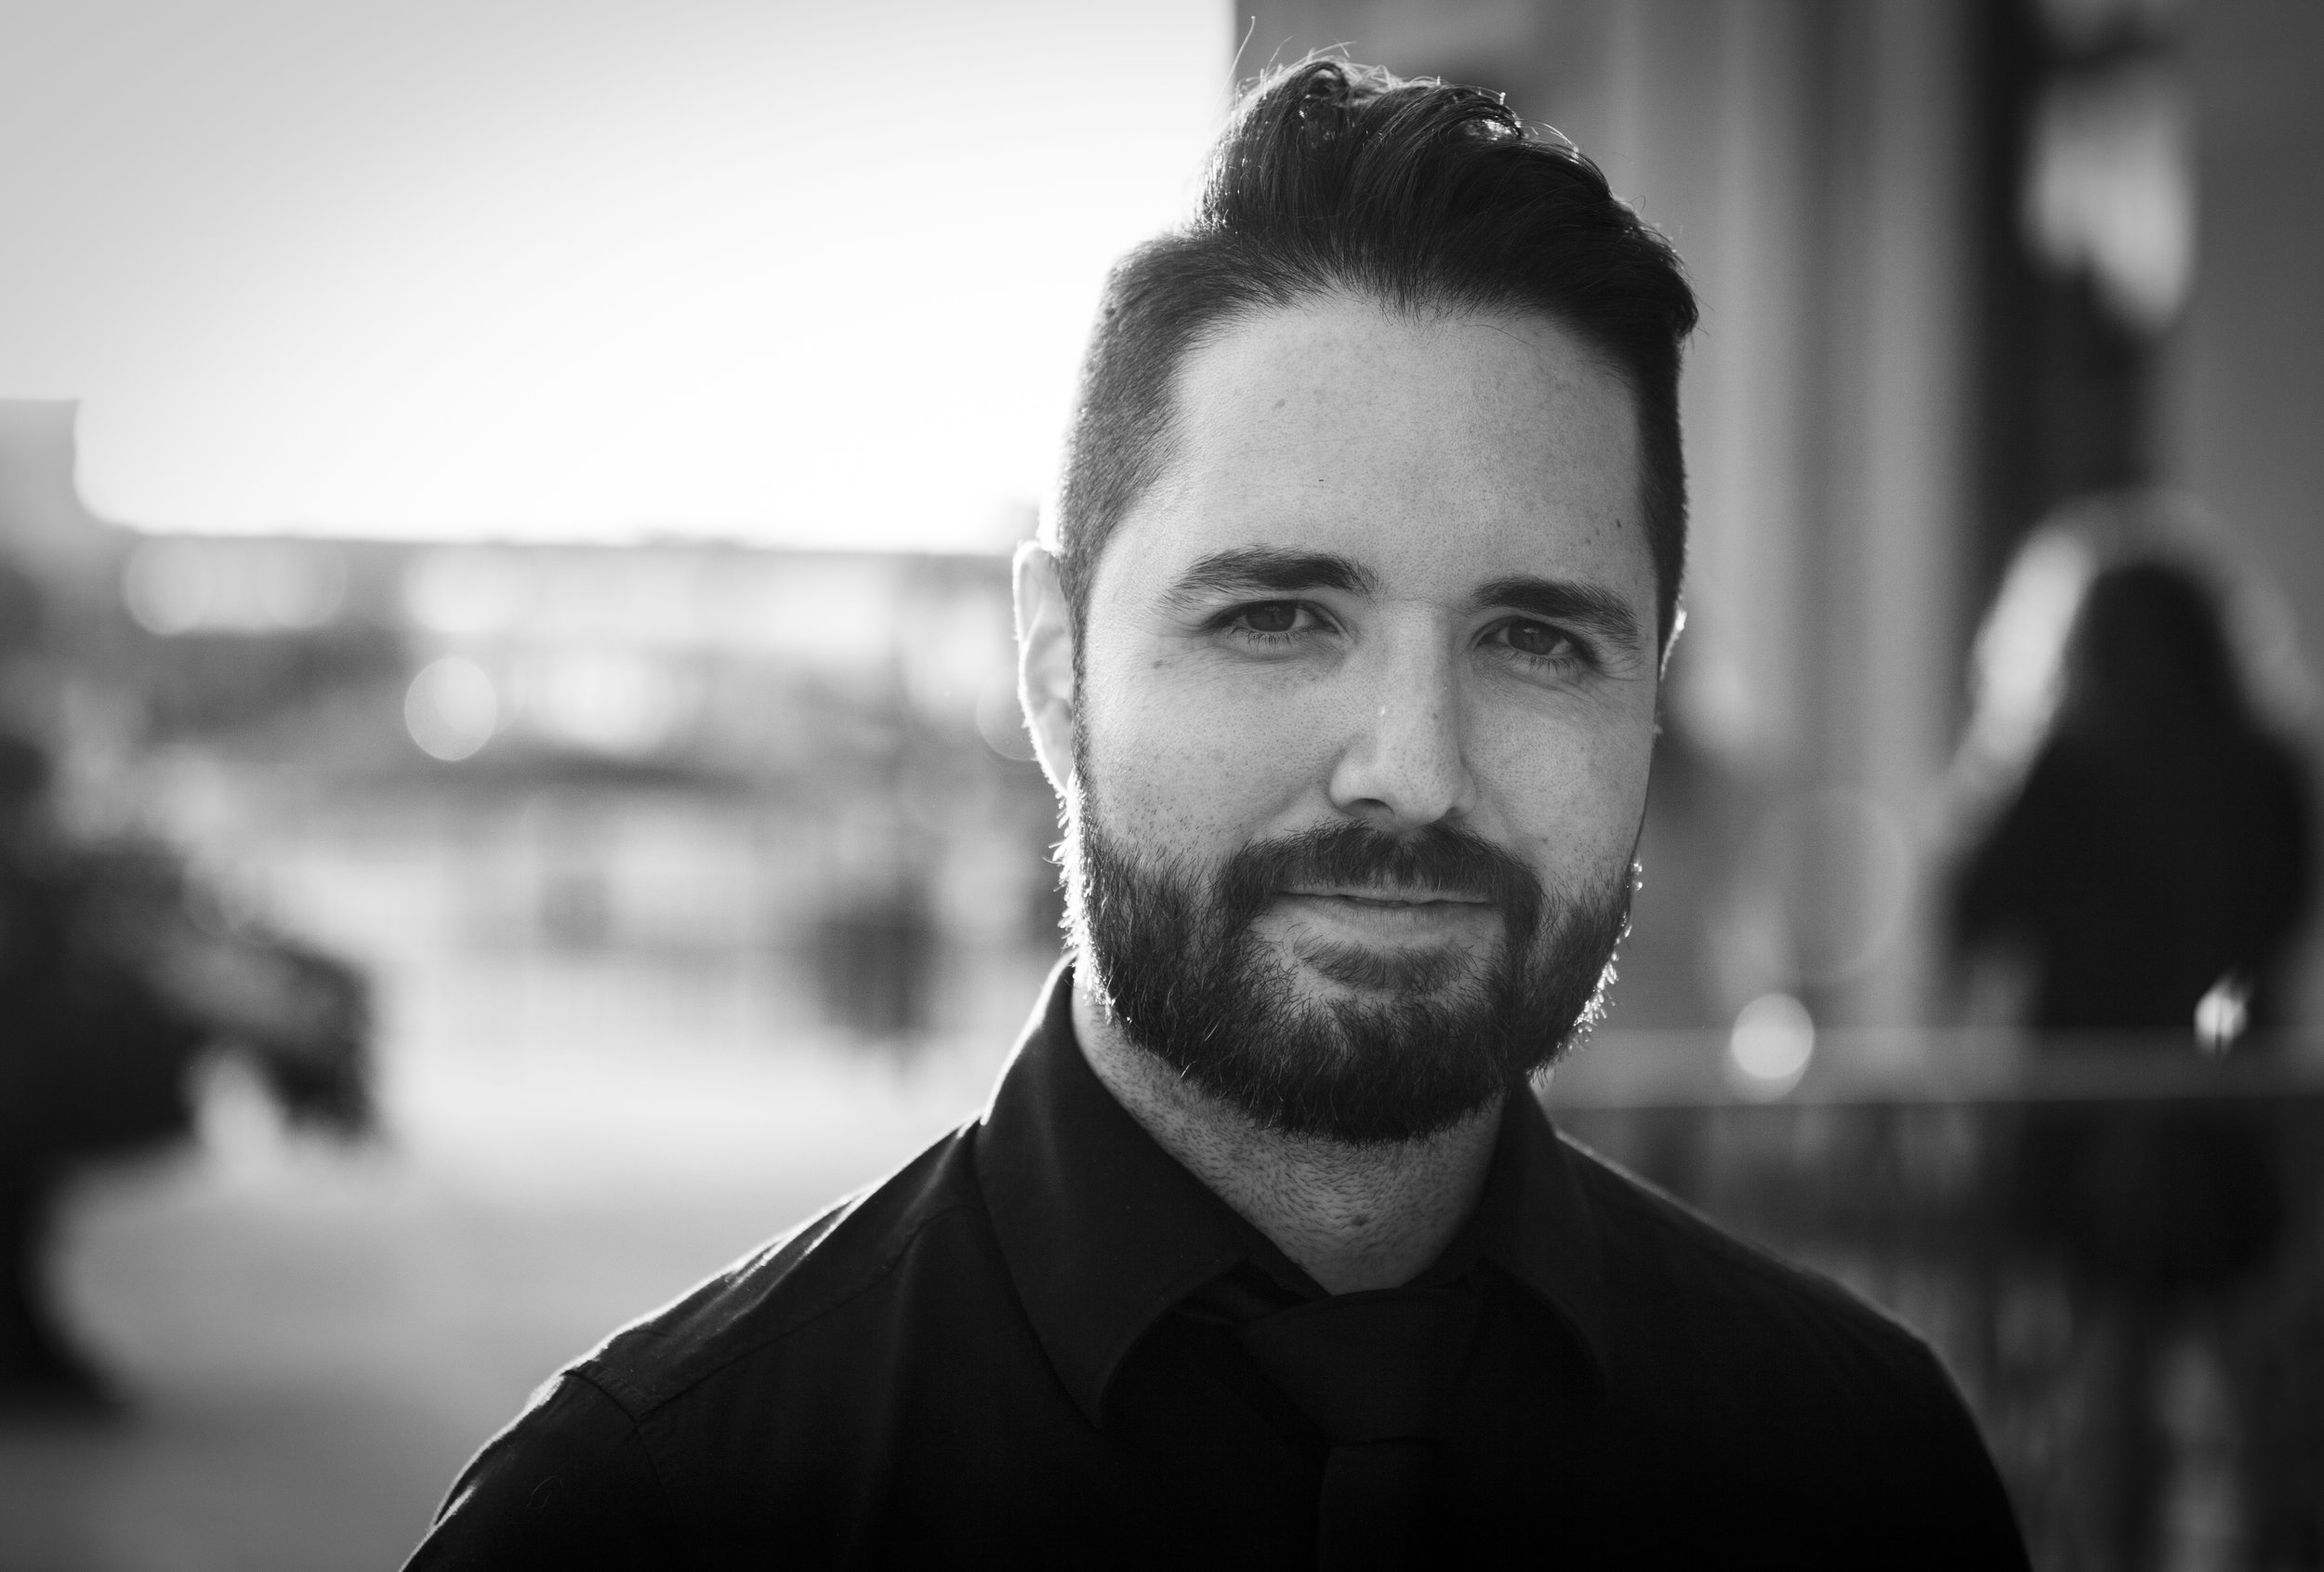 Edward McEvenue - Edward is a photographer, videographer, and video editor with over a decade of experience in multimedia. He has a passion for art and design, and strives to continually perfect his craft. Friendly, genuine, and easy to connect with.